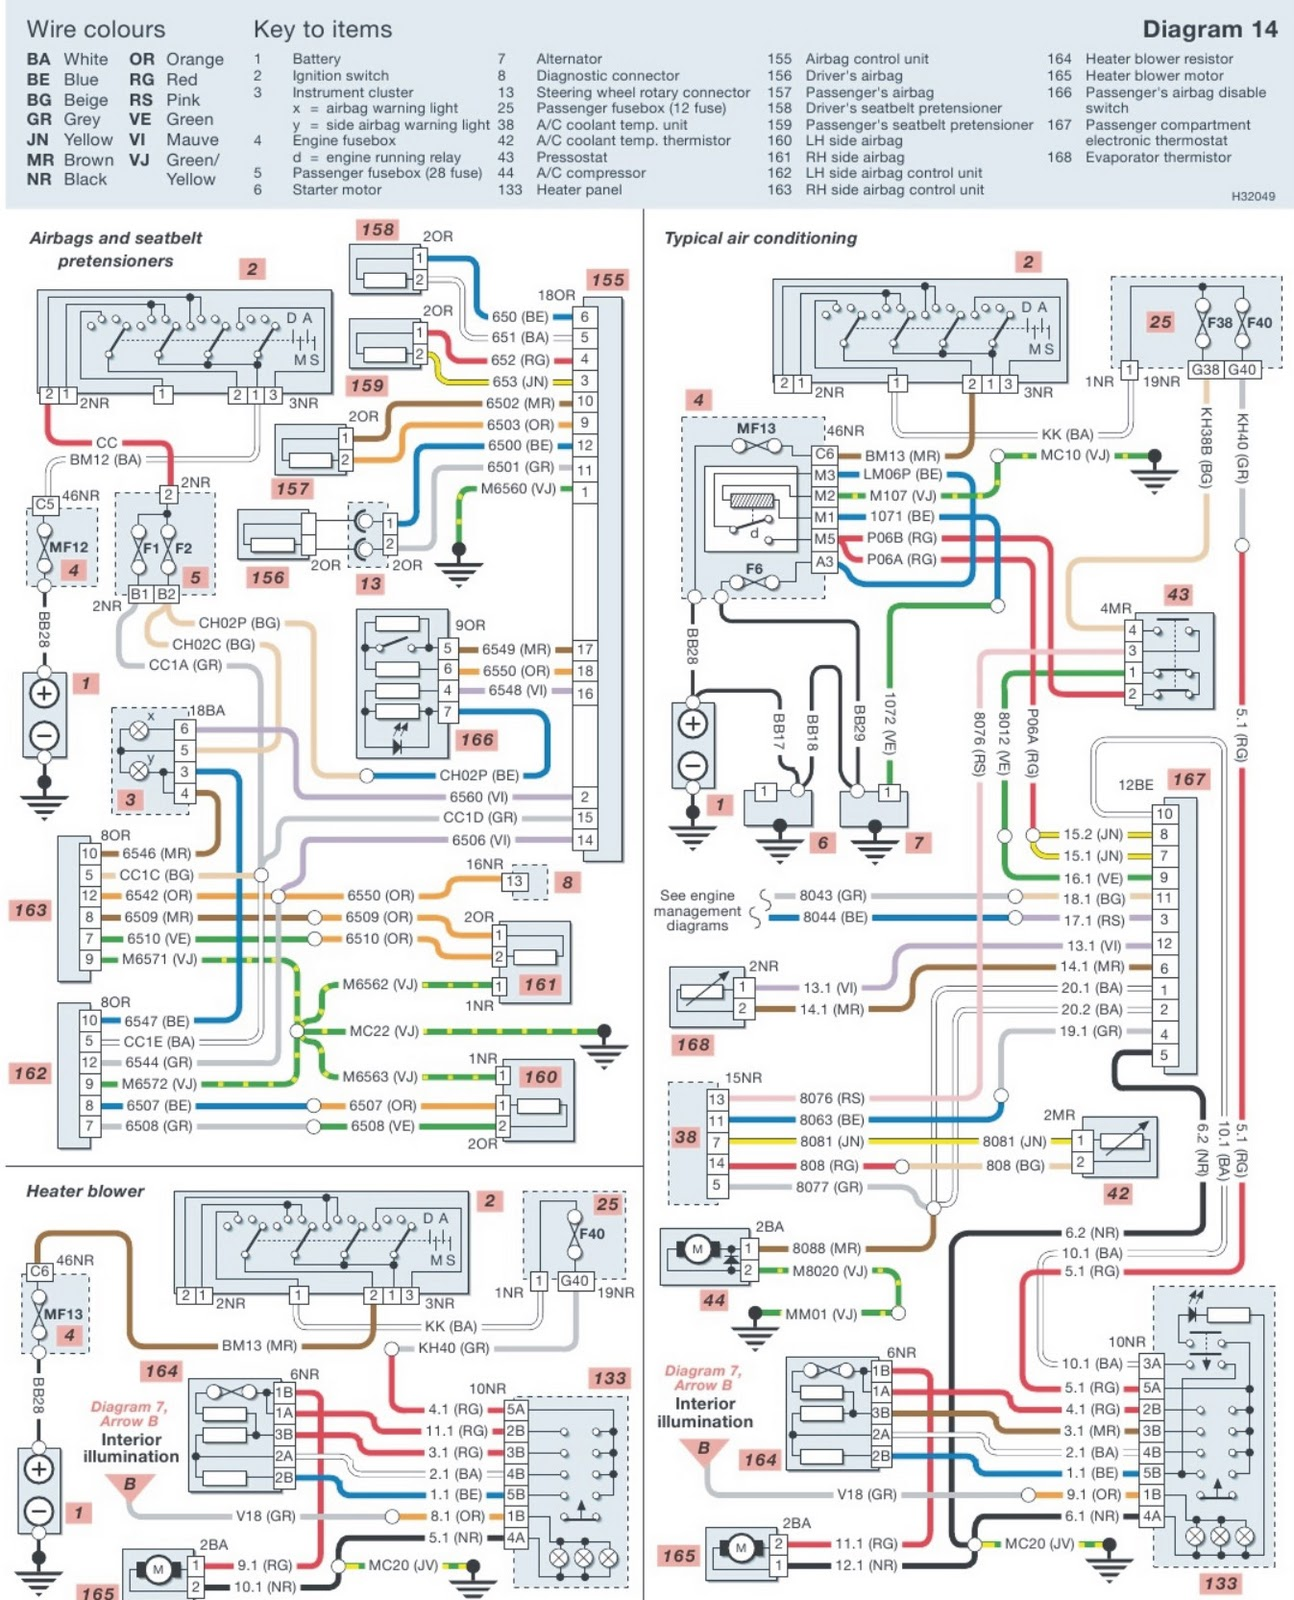 Peugeot 2006 System Wiring Diagrams Airbags, heater blower